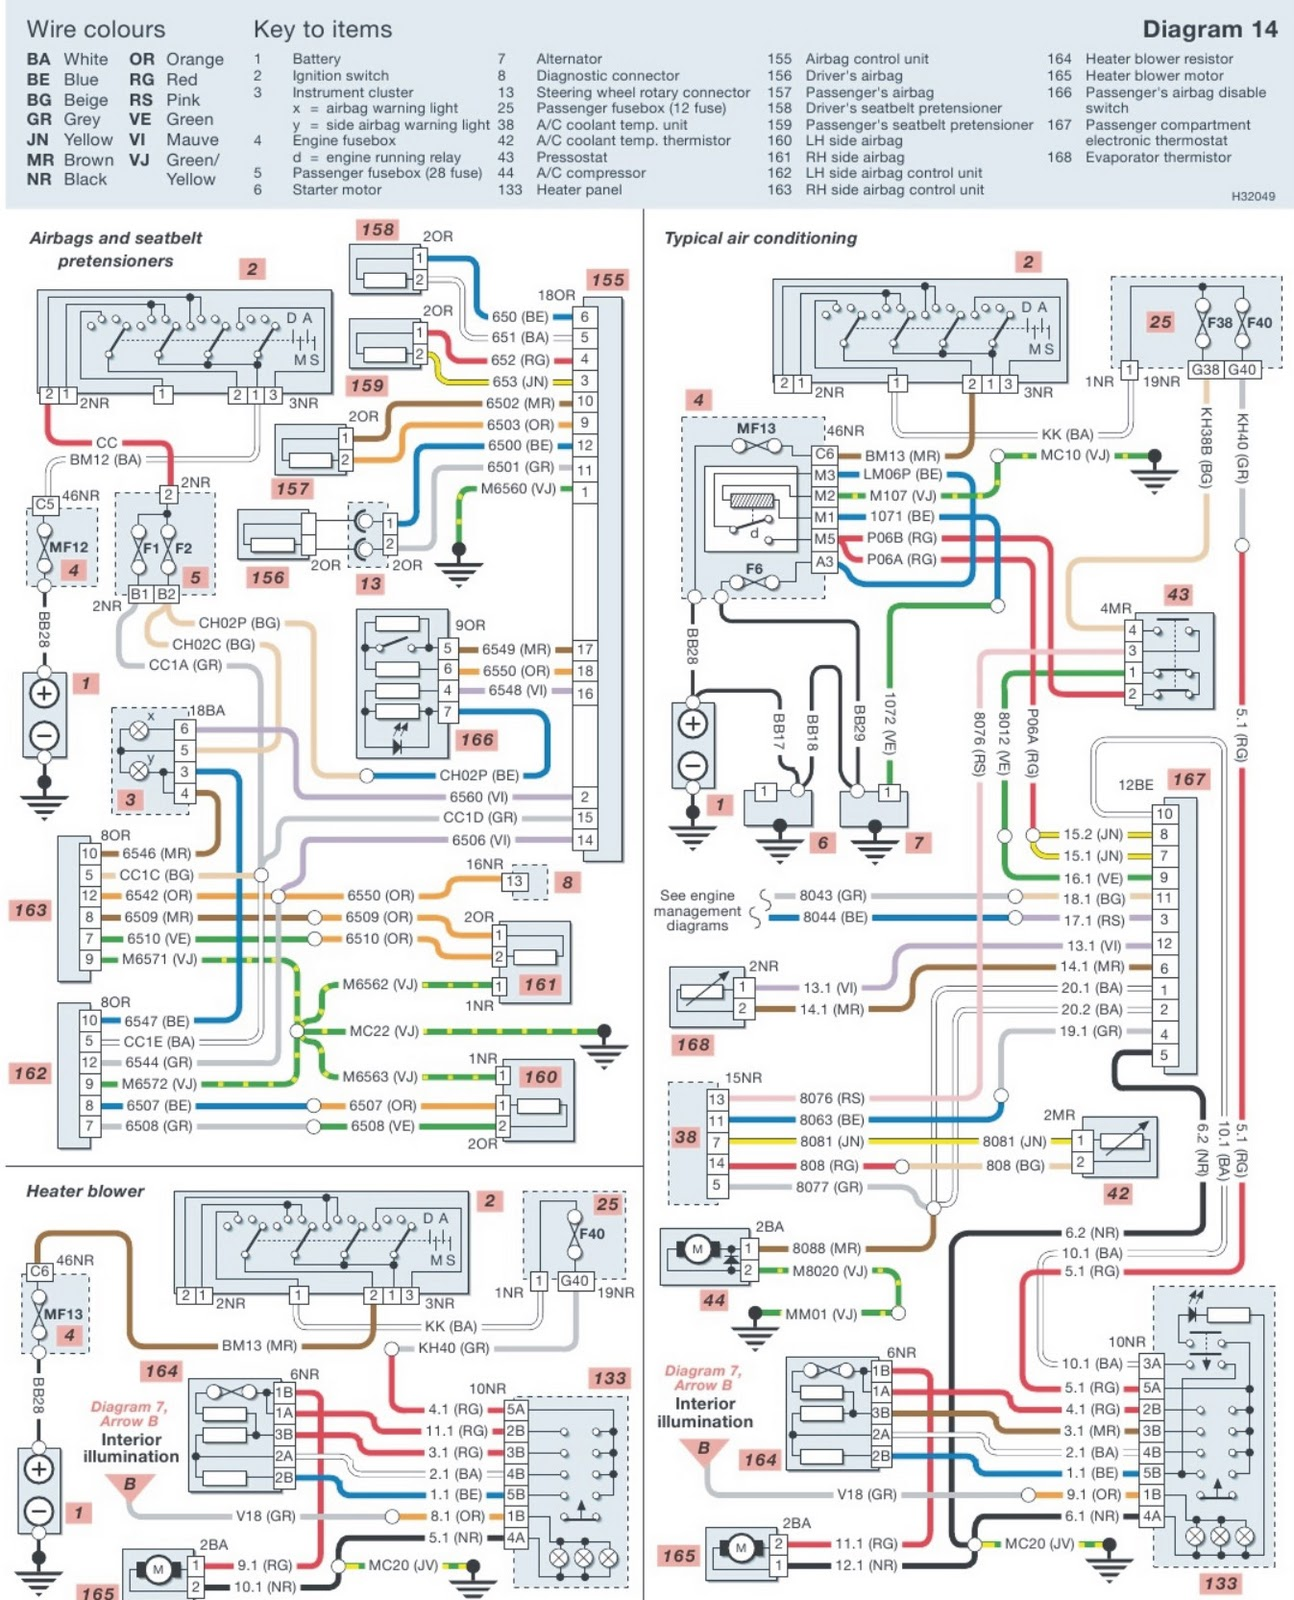 Peugeot 2006 System Wiring Diagrams Airbags, heater blower